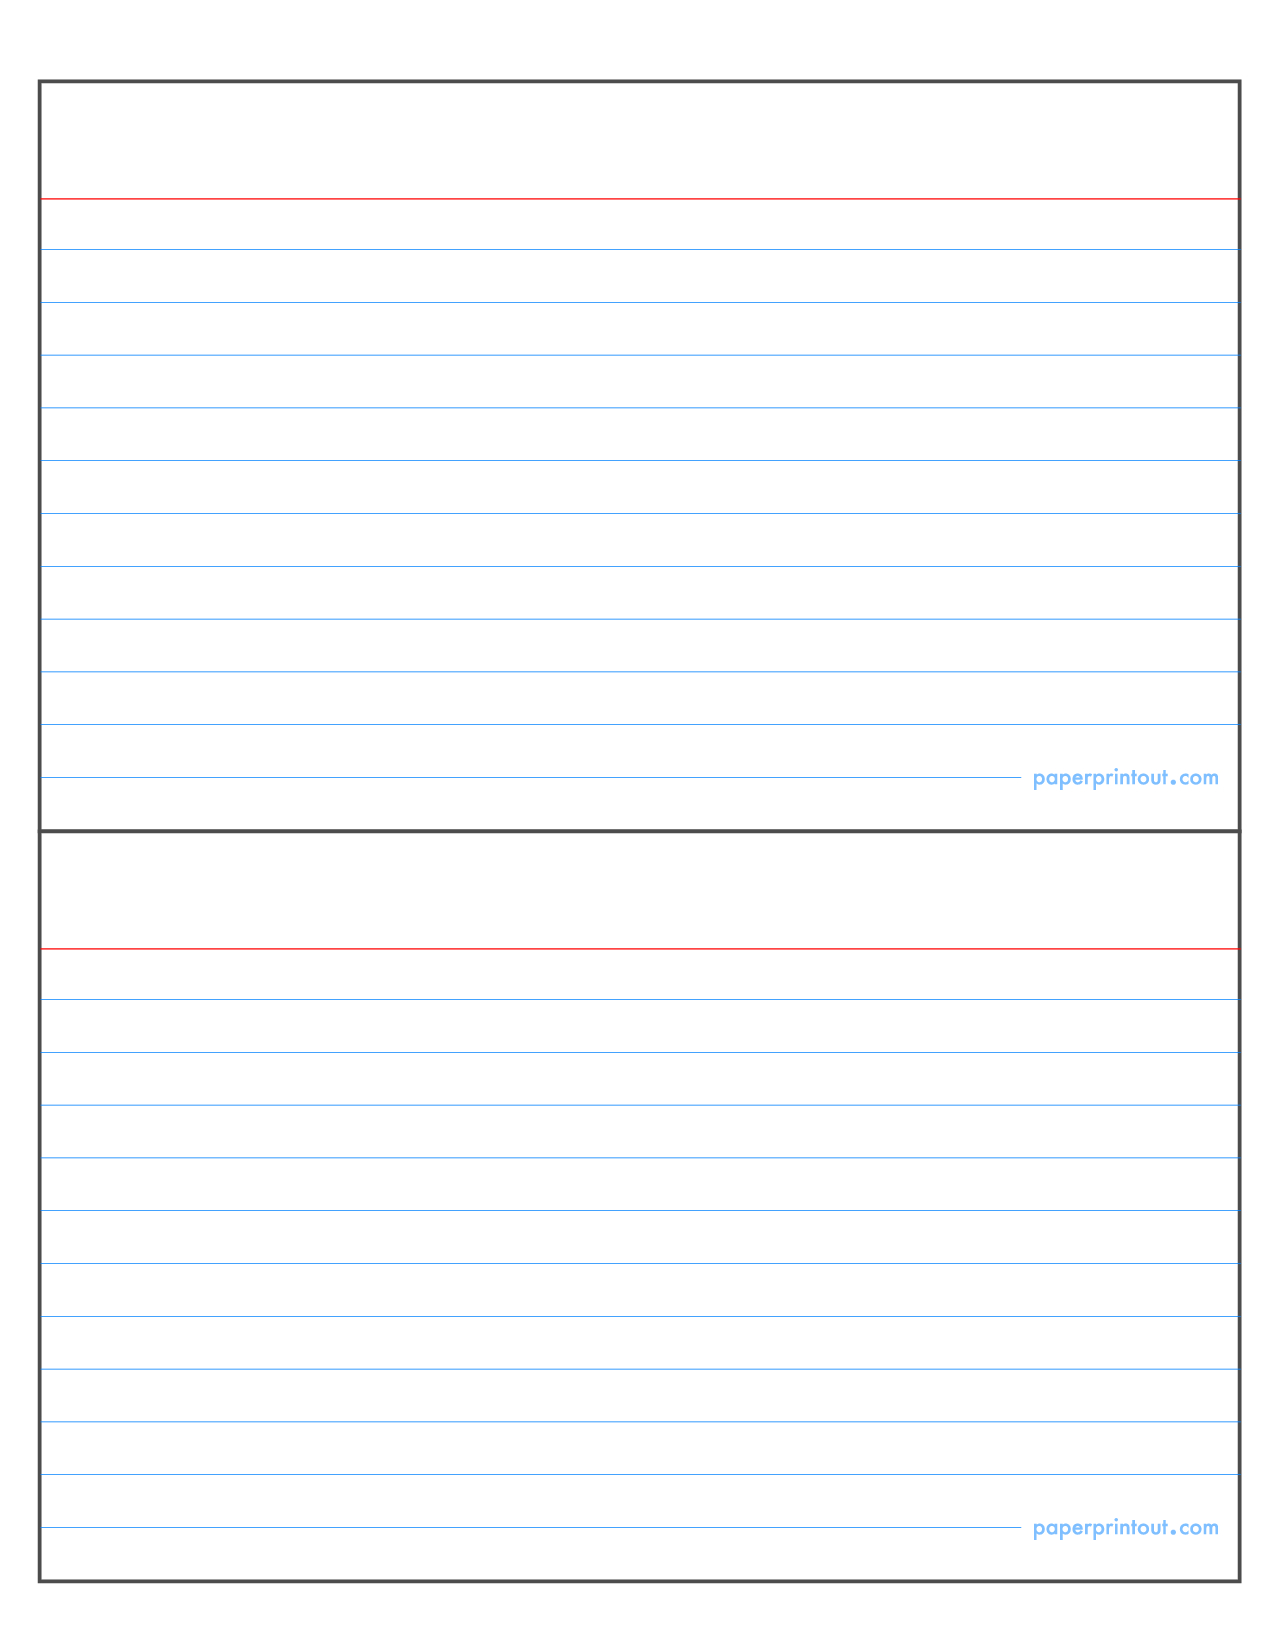 Printable 4X6 Index Cards Free   Download Them Or Print - Free Printable Index Cards